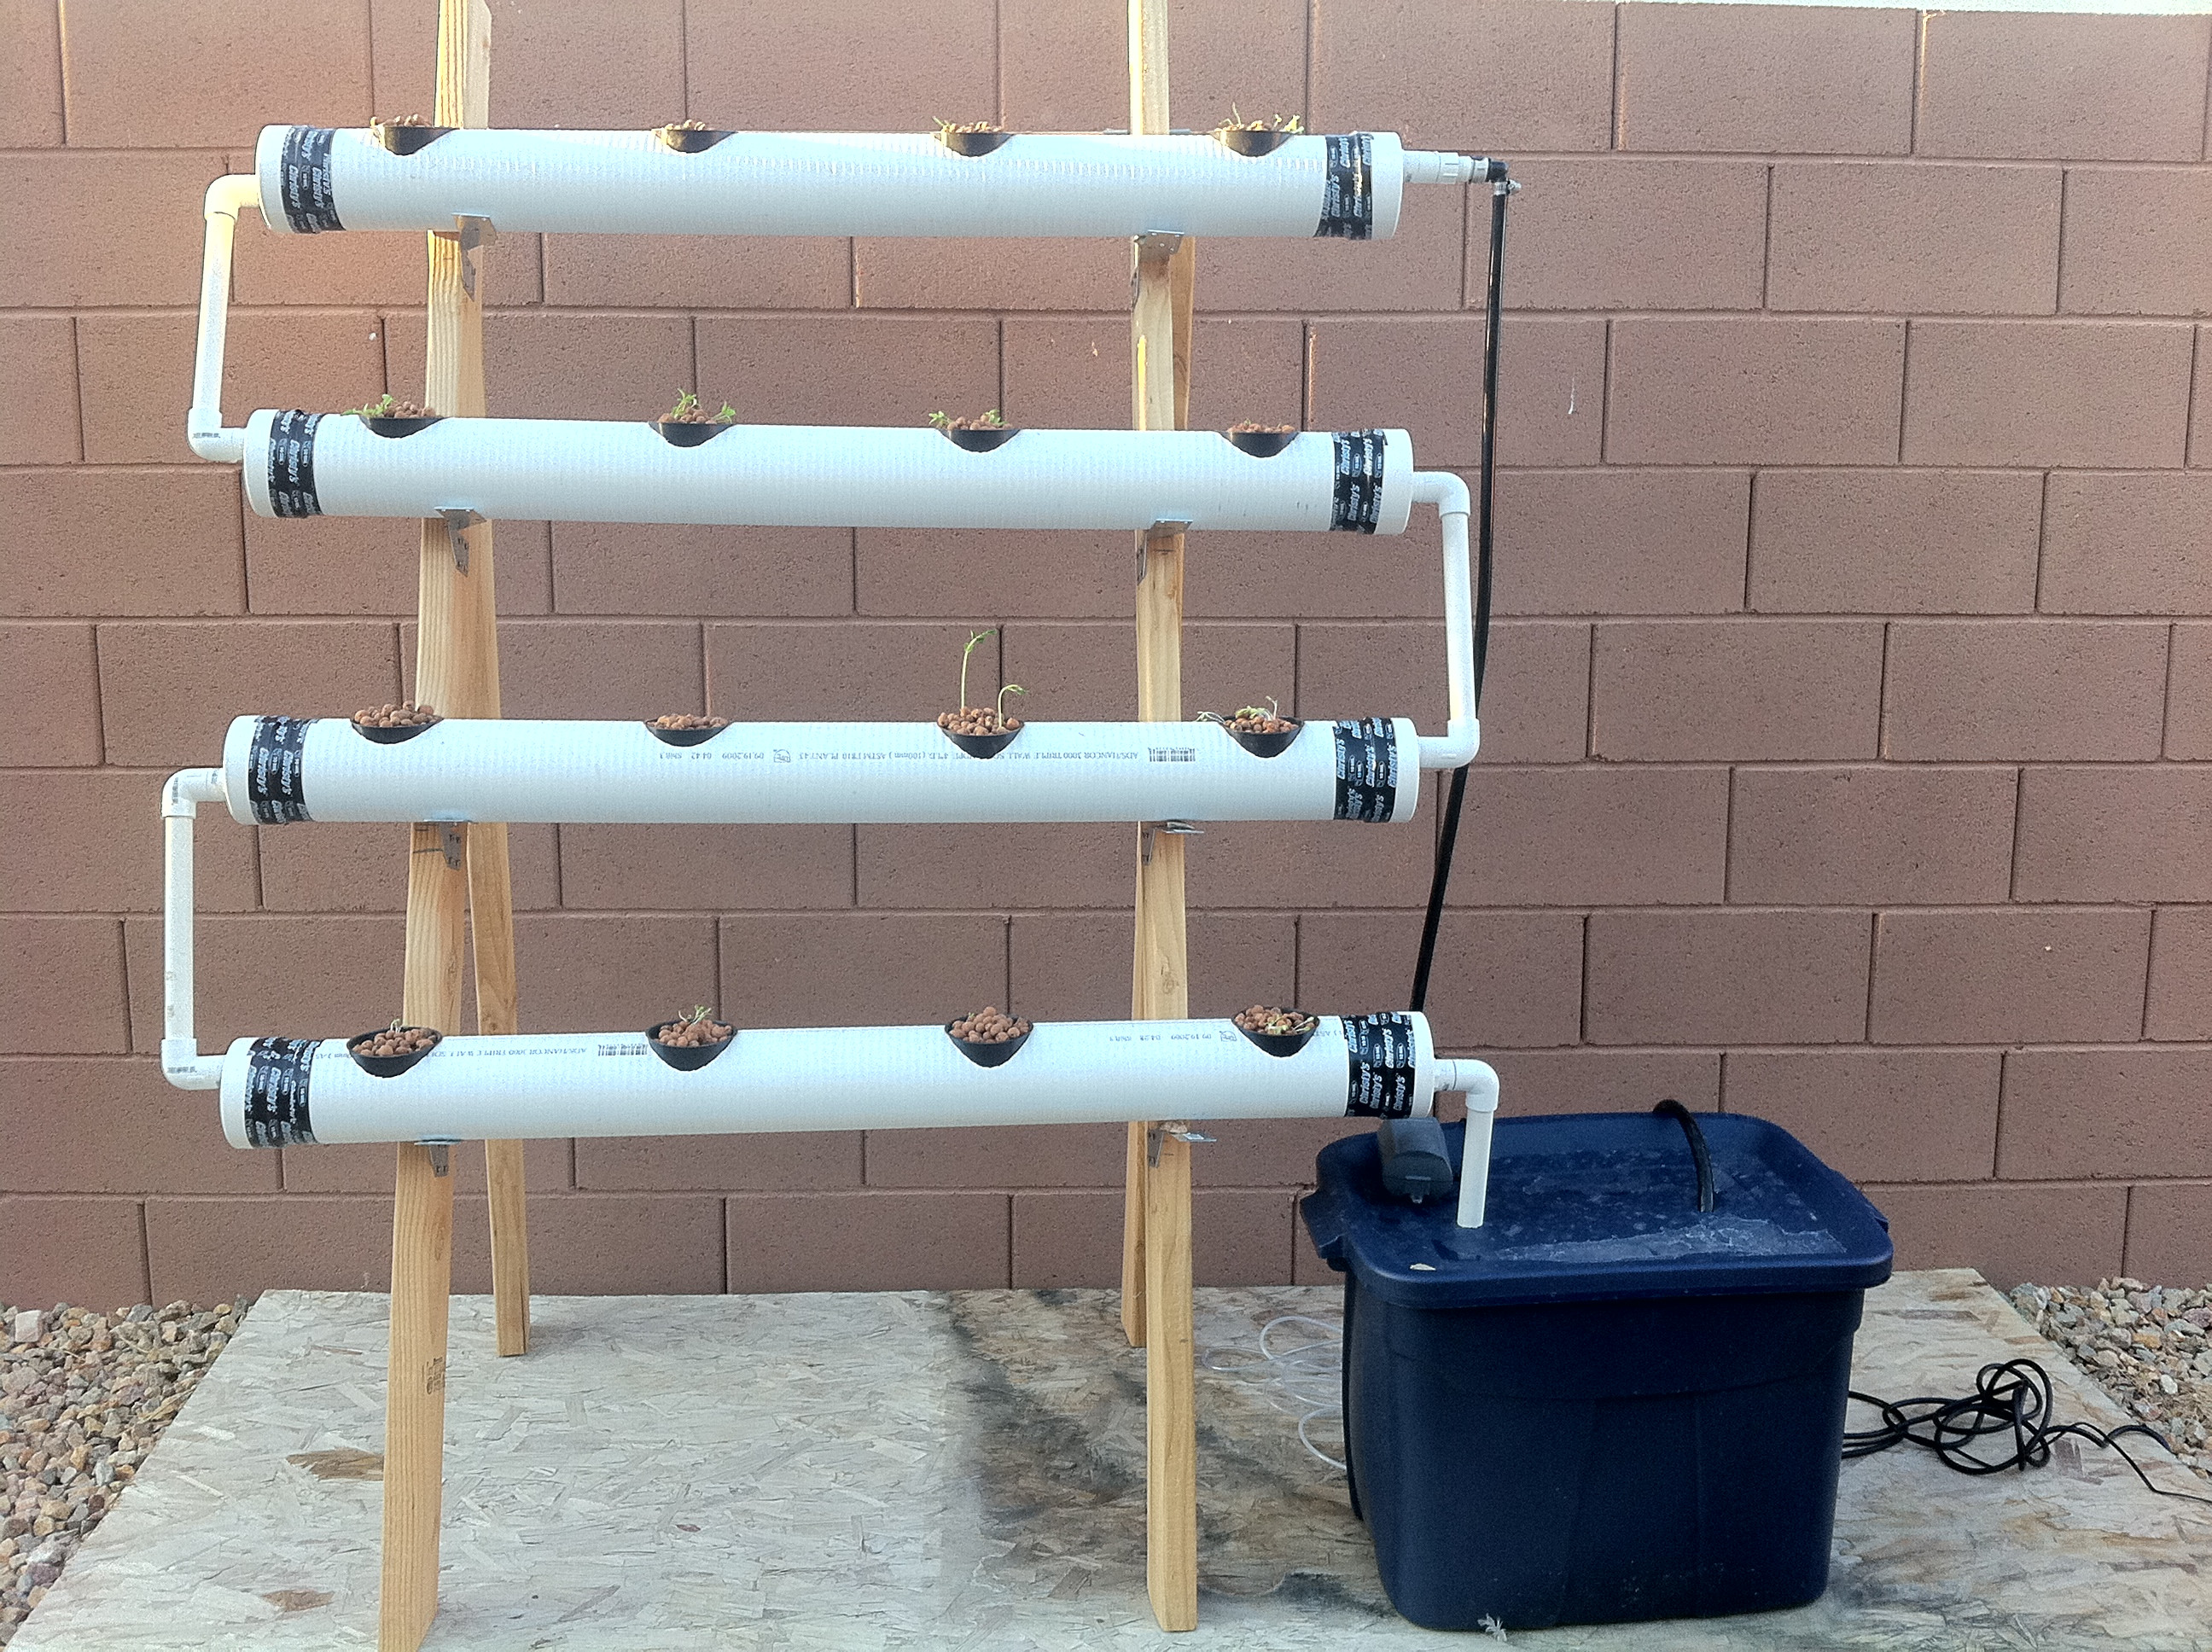 Best ideas about DIY Hydroponic Systems Plans . Save or Pin Small Hydroponic Kit Diy Aquaponics – Quickly Build Your Now.